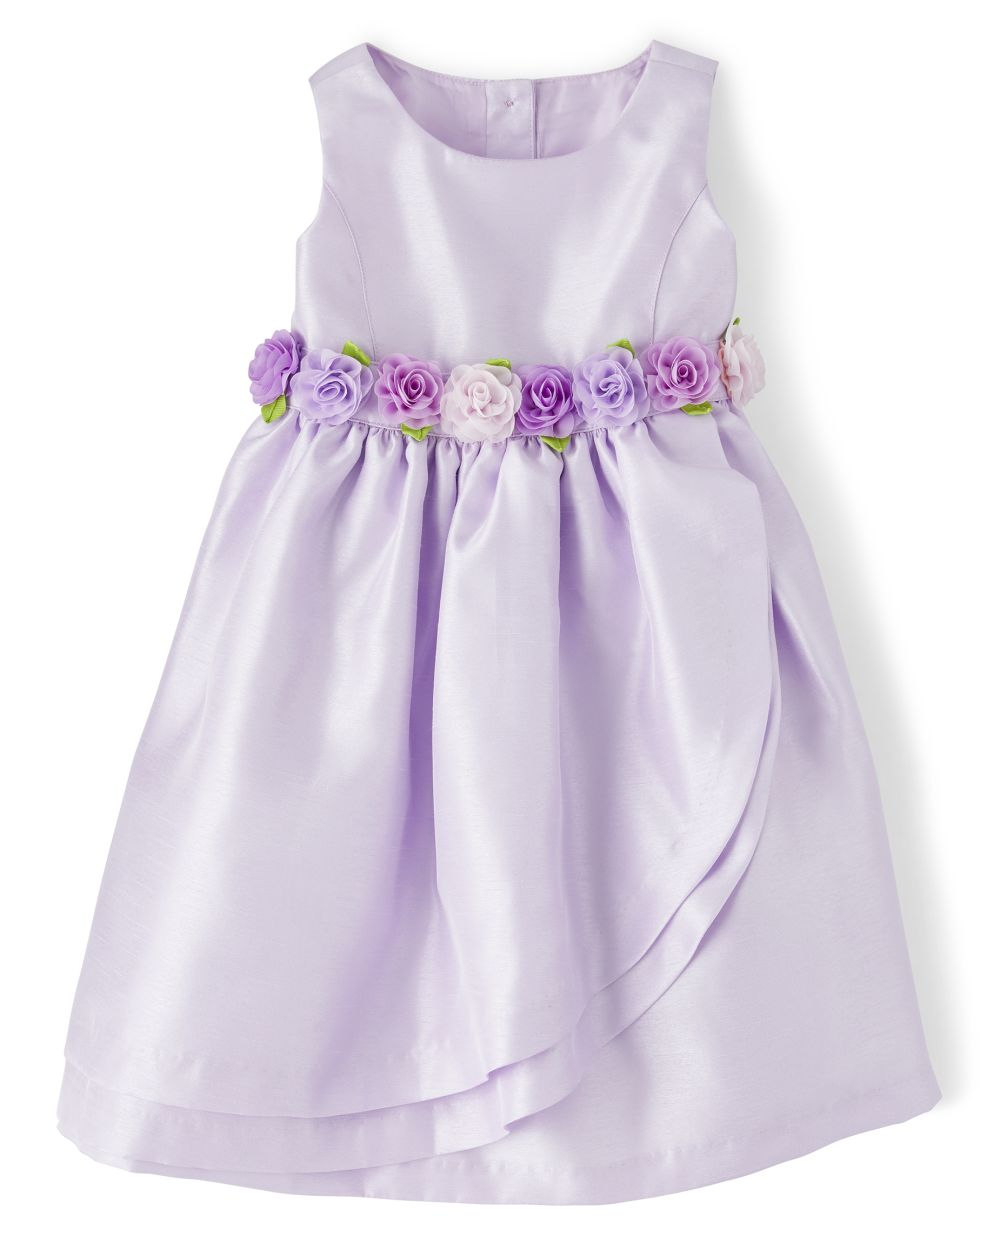 Girls Flower Applique Dress - Spring Jubilee